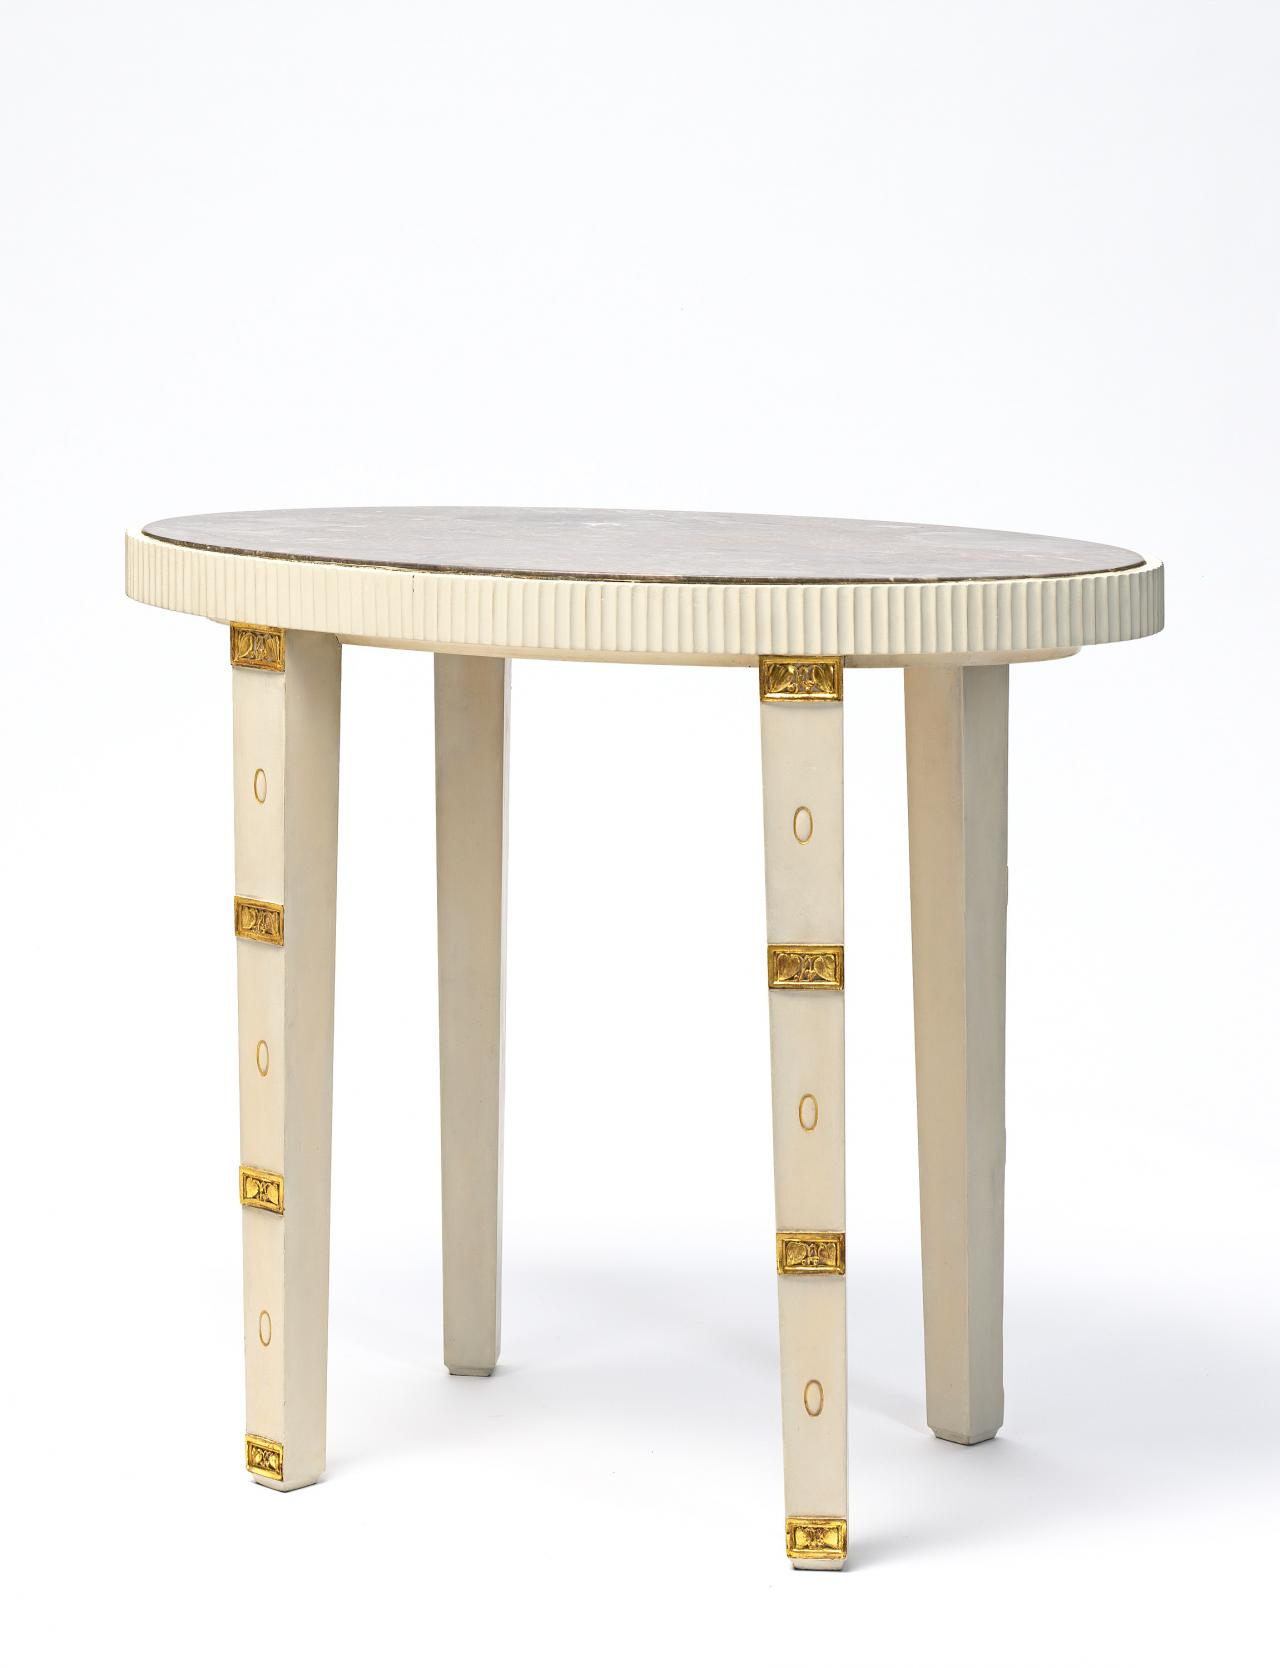 Occasional table, from the Gallia apartment boudoir